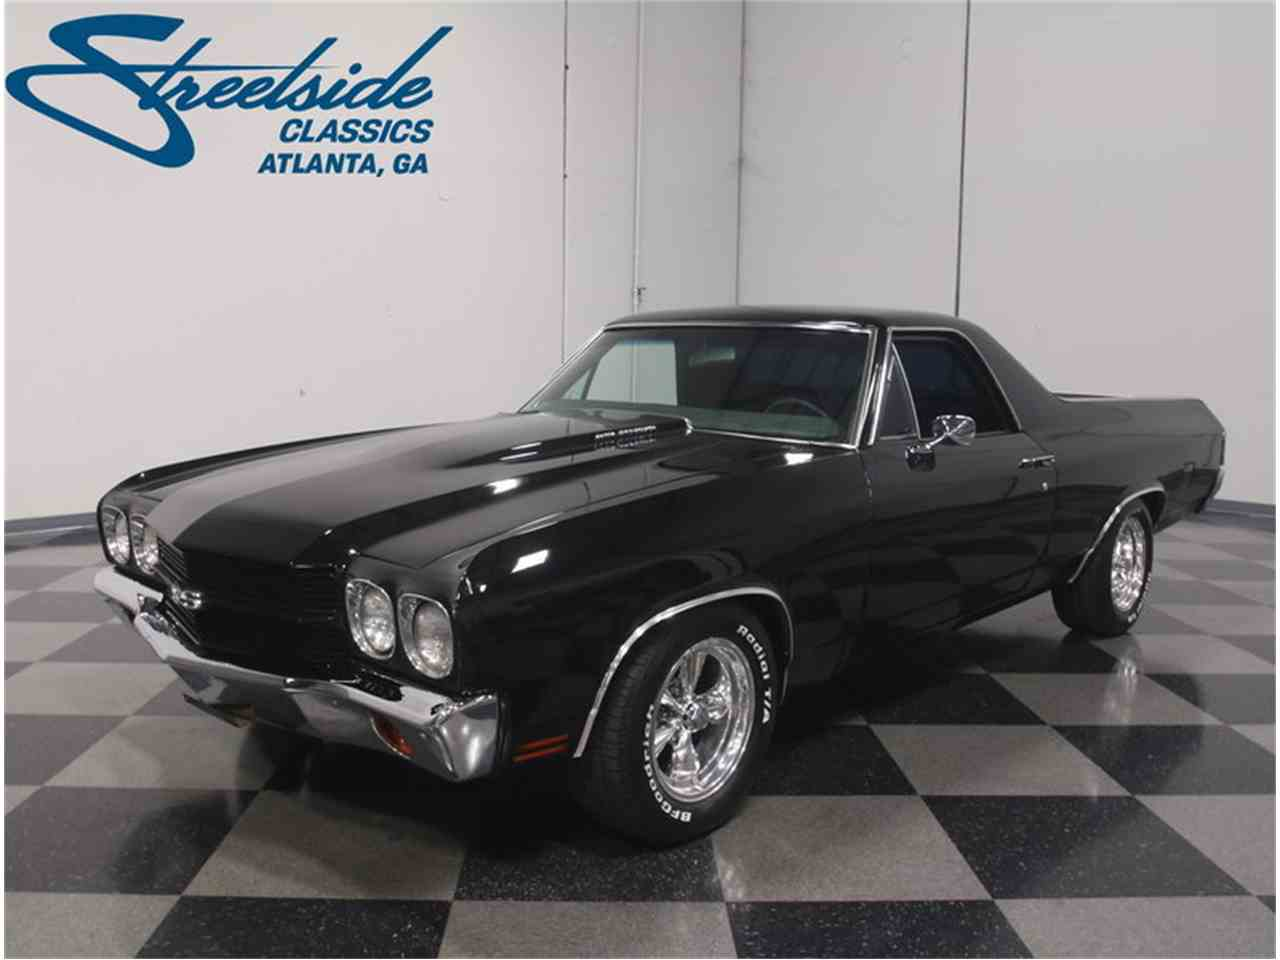 All Chevy chevy 1970 : All Chevy » 1970 Chevrolet El Camino Ss - Old Chevy Photos ...